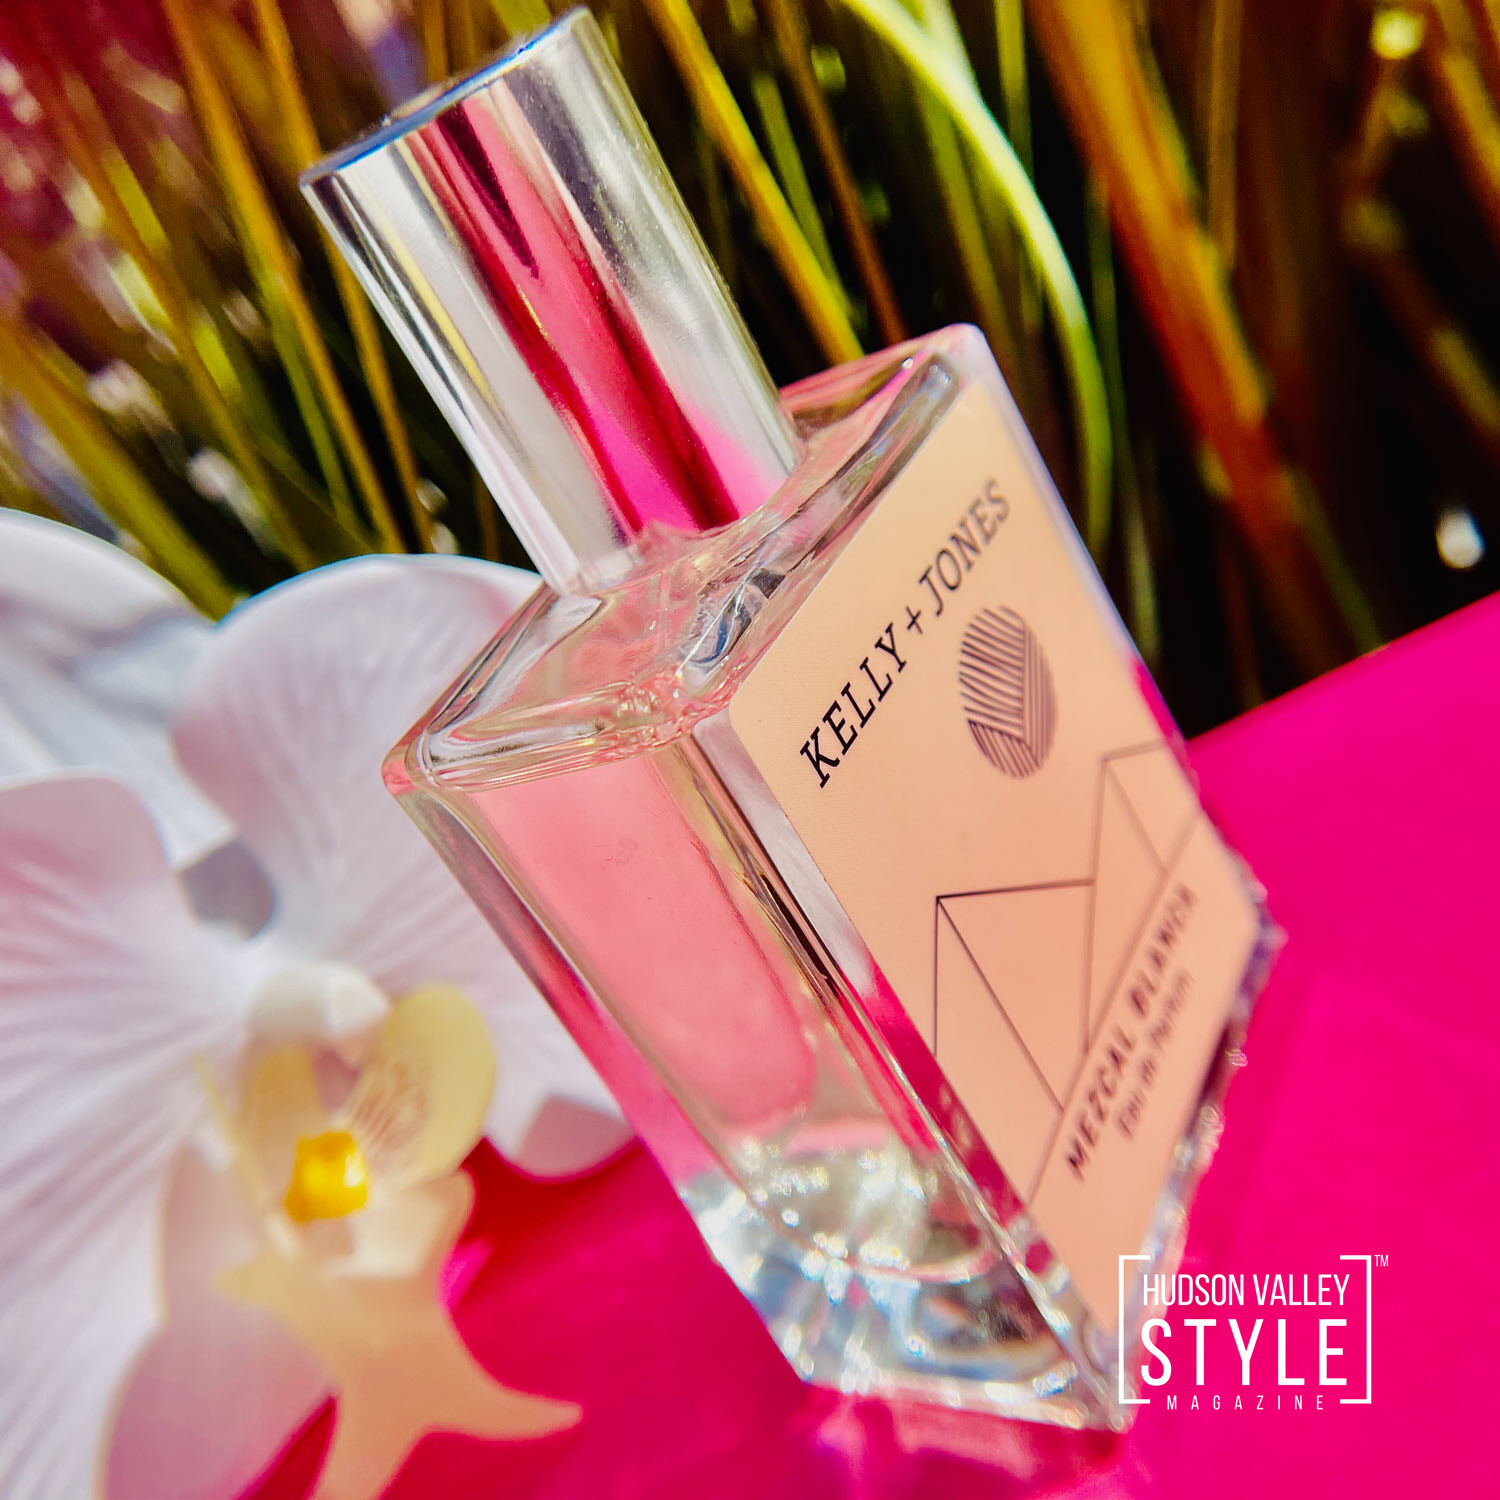 The How To's of Choosing the Right Perfume for Your Darling – by Designer Maxwell L. Alexander, EIC, Hudson valley Style Magazine – Product Photography by Duncan Avenue Studios – Presented by Kelly and Jones Perfumes